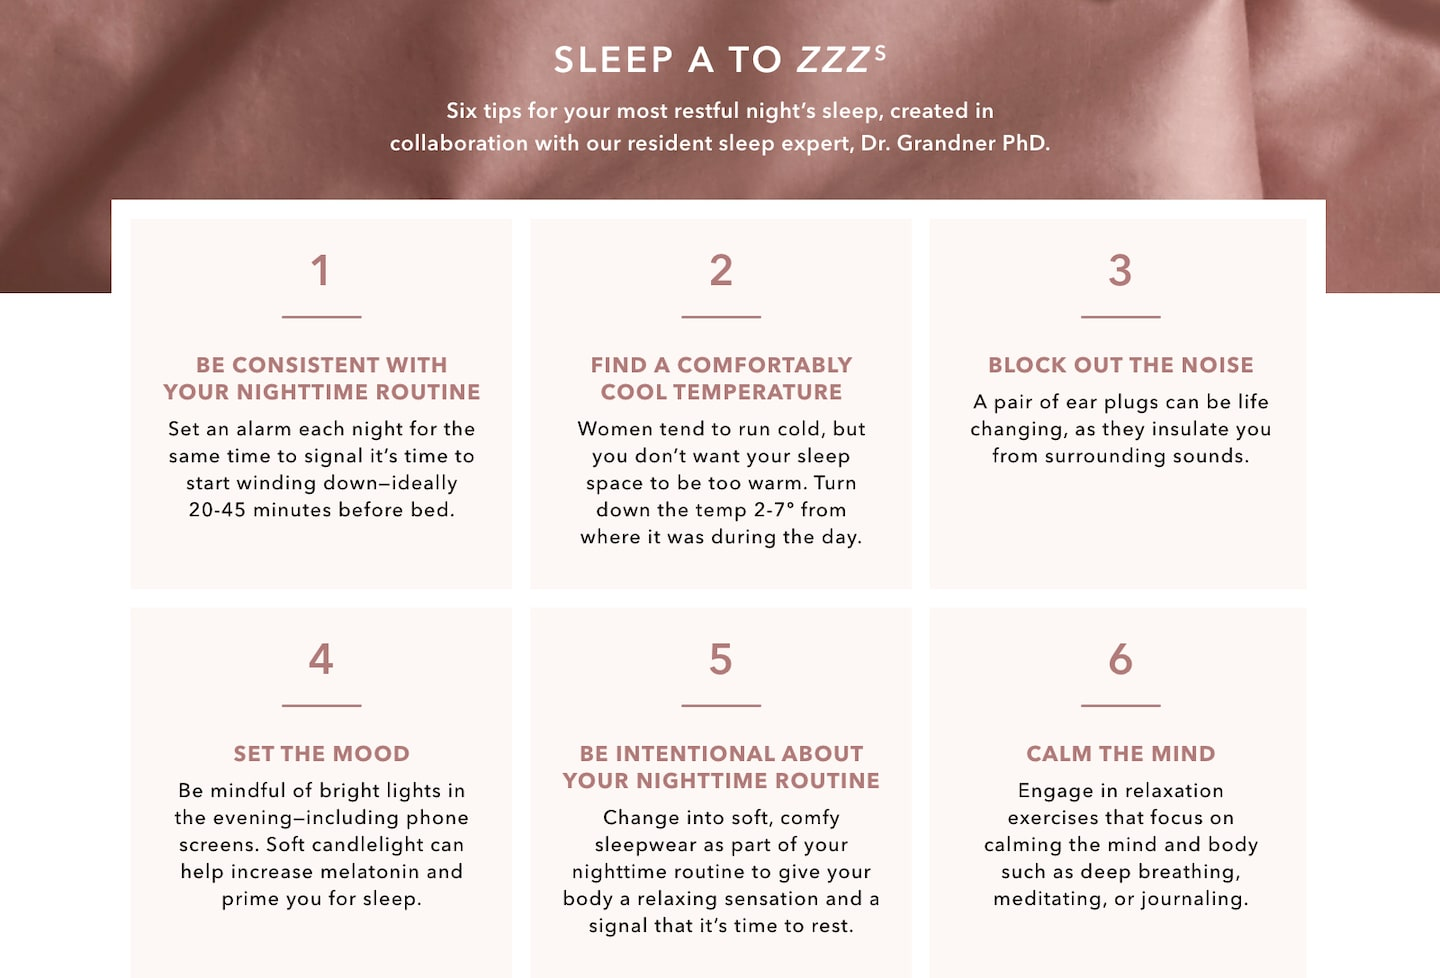 SLEEP A TO ZZZZs. Six tips for your most restful night's sleep, created in collaboration with our resident sleep expert, Dr. Grandner PhD. 1. Be consistent with your nighttime routine: Set an alarm each night for the same time to signal it's time to wind down—ideally 20-45 minutes before bed. 2. Find a comfortably cool temperature: Women tend to run cold, but you don't want your sleep space to be too warm. Turn down the temp 2-7 degrees from where it was during the day. 3. Block out the noise: A pair of ear plugs can be life changing, as they insulate you from surrounding sounds. 4. Set the mood: Be mindful of bright lights in the evening – including phone screens. Soft candlelight can help increase melatonin and prime you for sleep. 5. Be intentional about your nighttime routine: Change into soft, comfy sleepwear as part of your nighttime routine to give your body a relaxing sensation and a signal that it's time to rest. 6. Calm the mind: Engage in relaxation exercises that focus on calming the mind and body such as deep breathing, meditating or journaling.